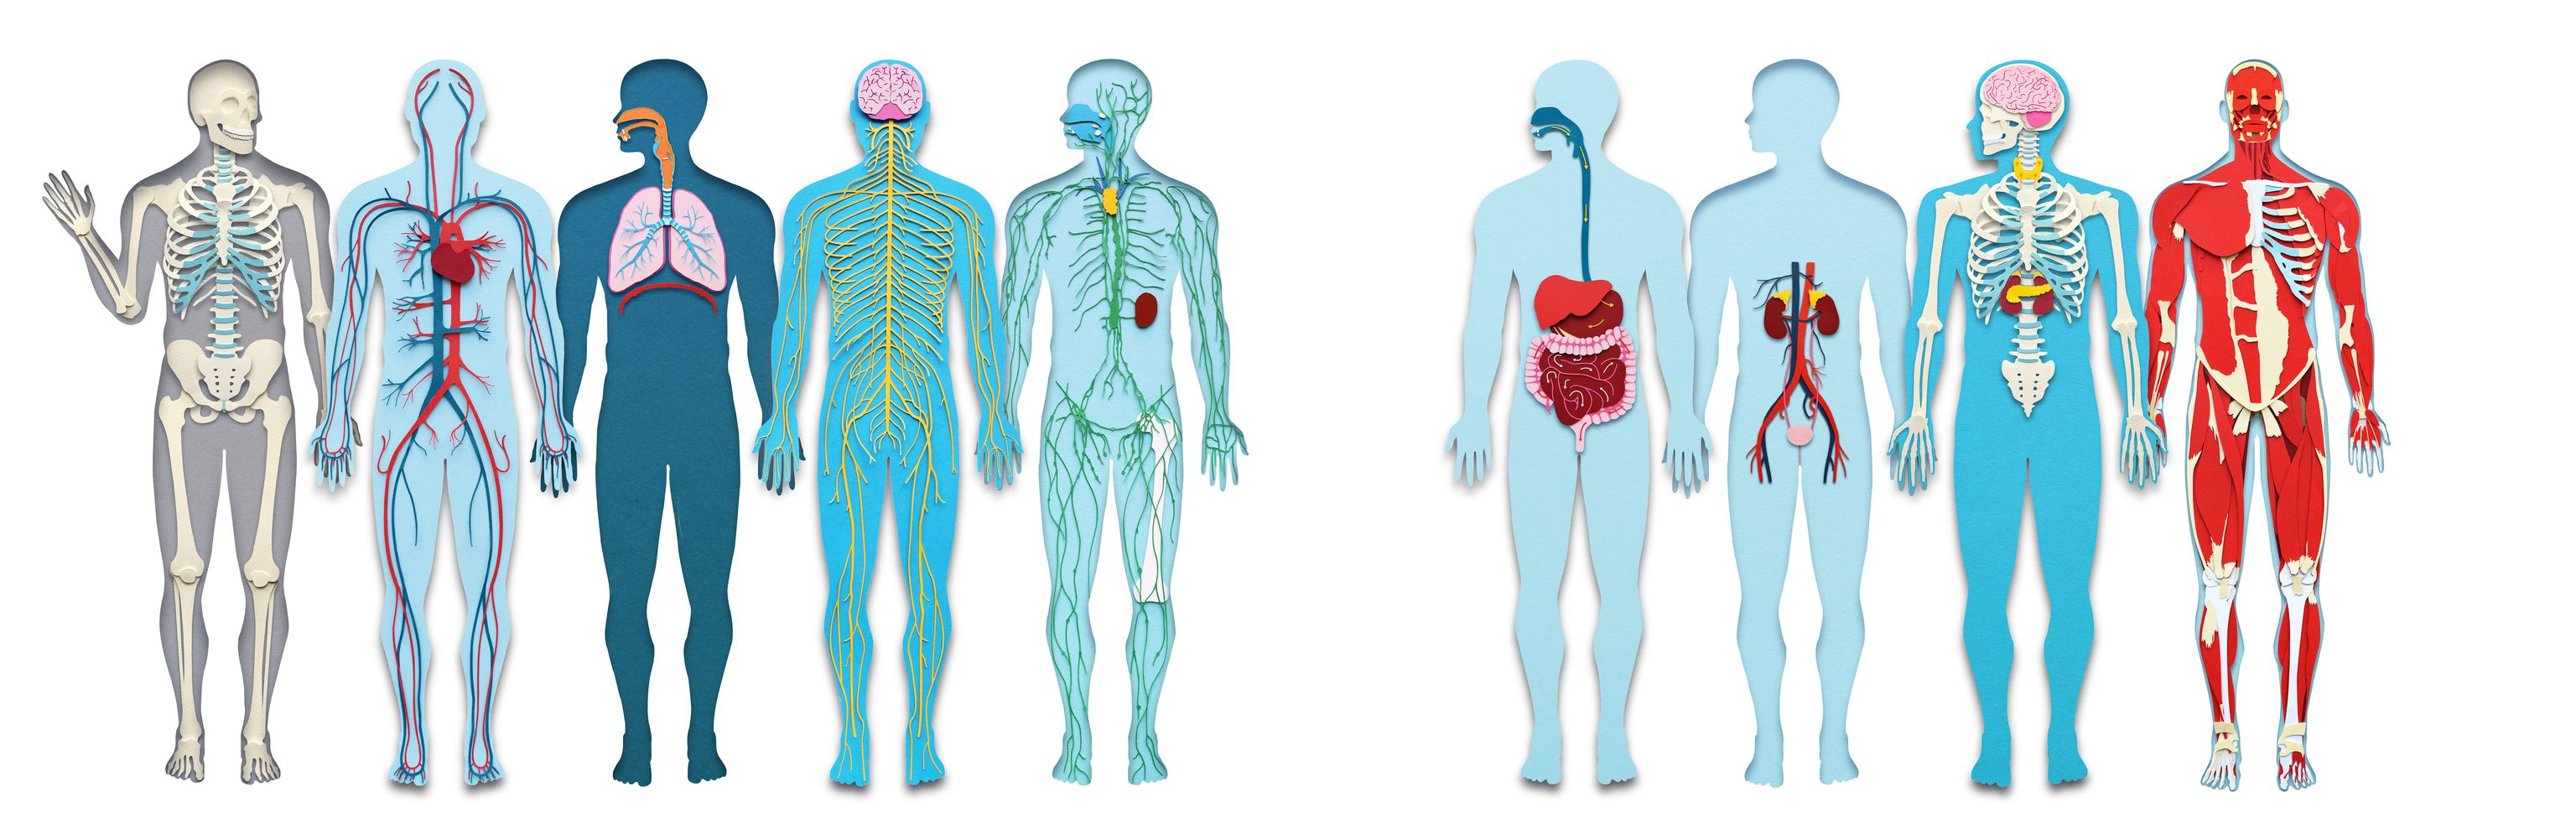 Learn about the organ systems in the human body